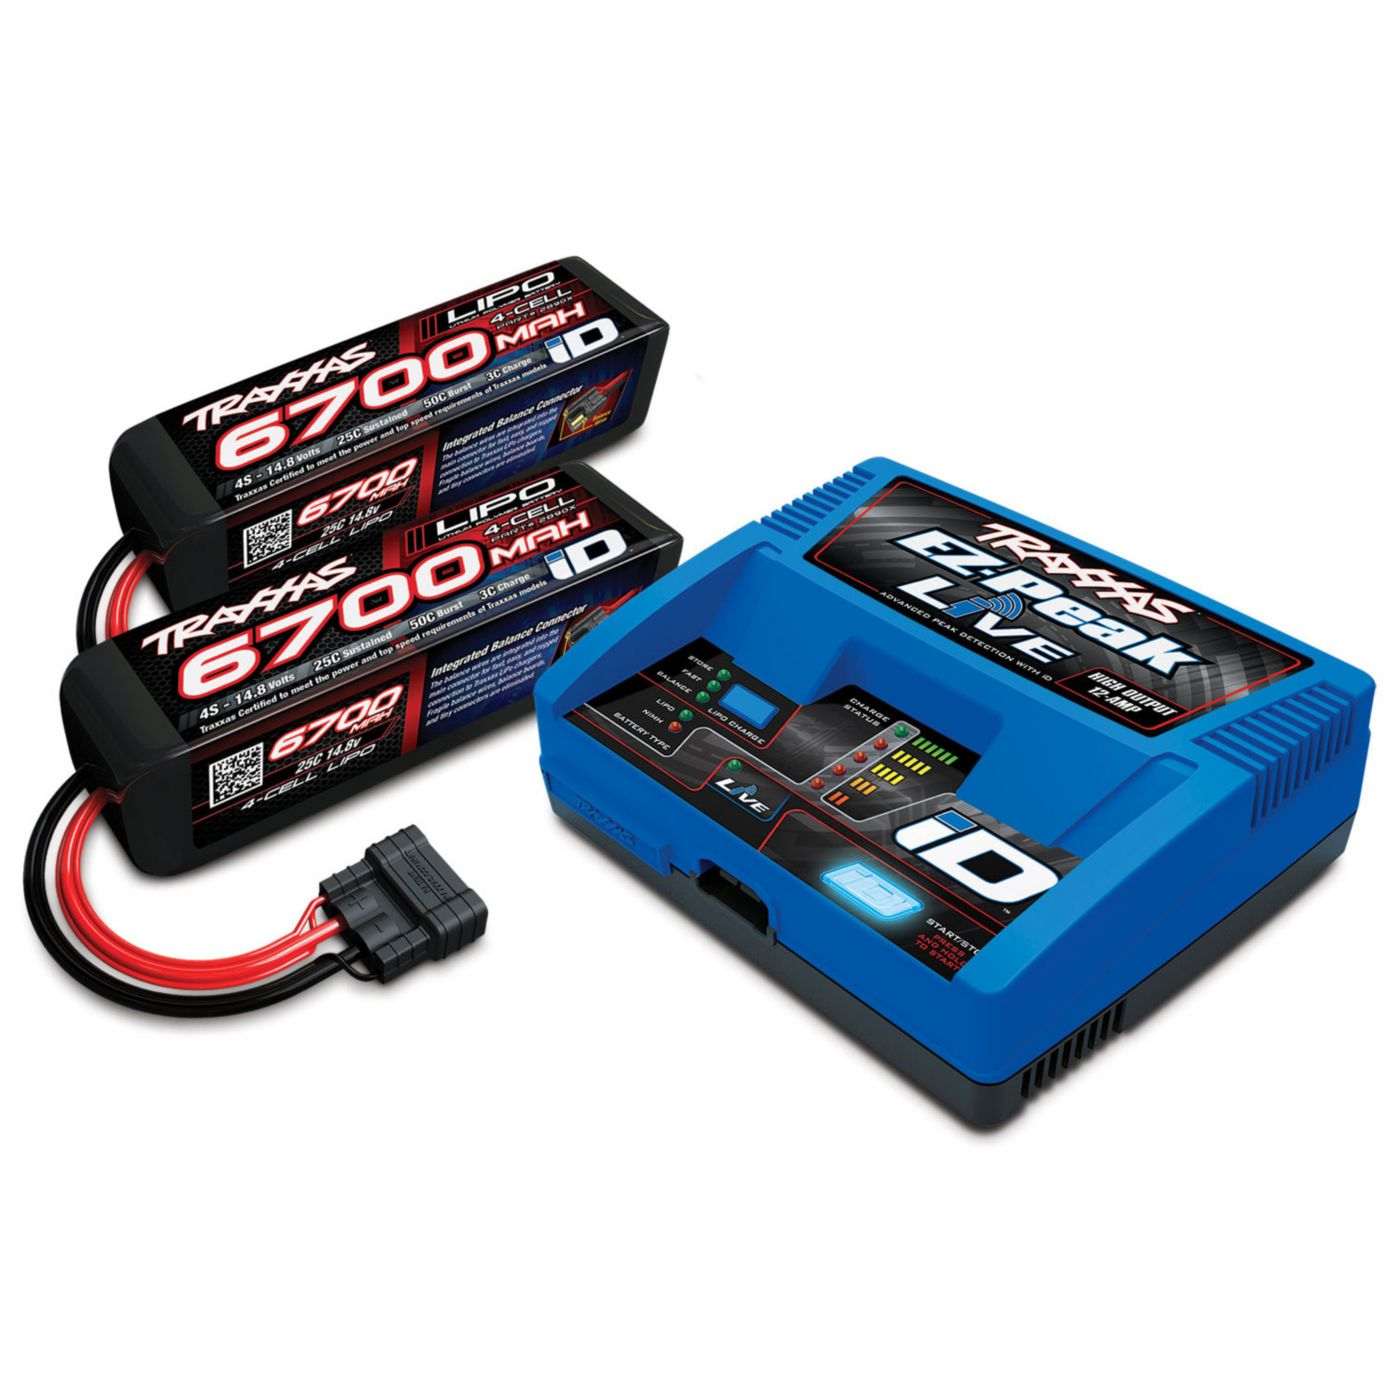 4S 6700mAh pleter Pack 2 14 8V 6700mAh LiPo Battery 1